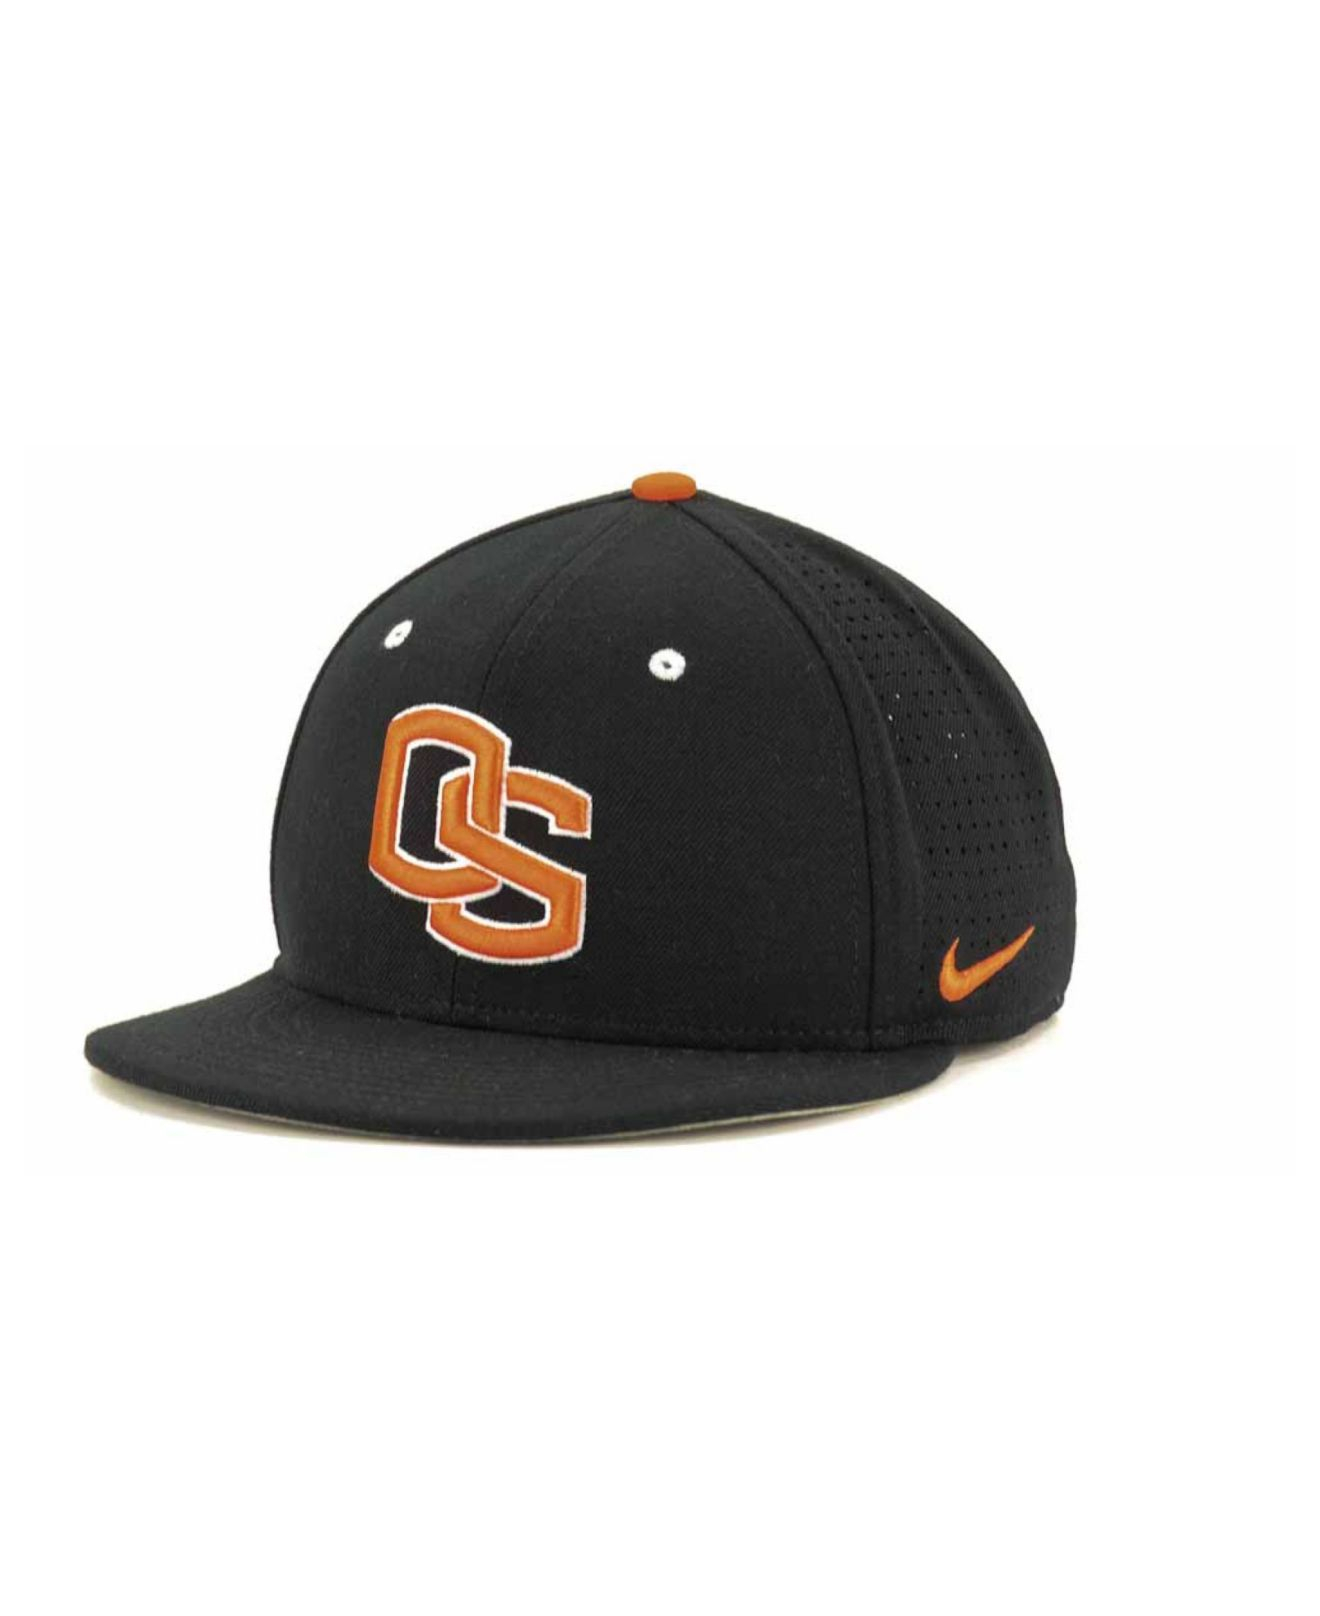 ... wholesale lyst nike oregon state beavers ncaa authentic vapor fitted  cap in 7e638 6f269 d4a8a4ea1681